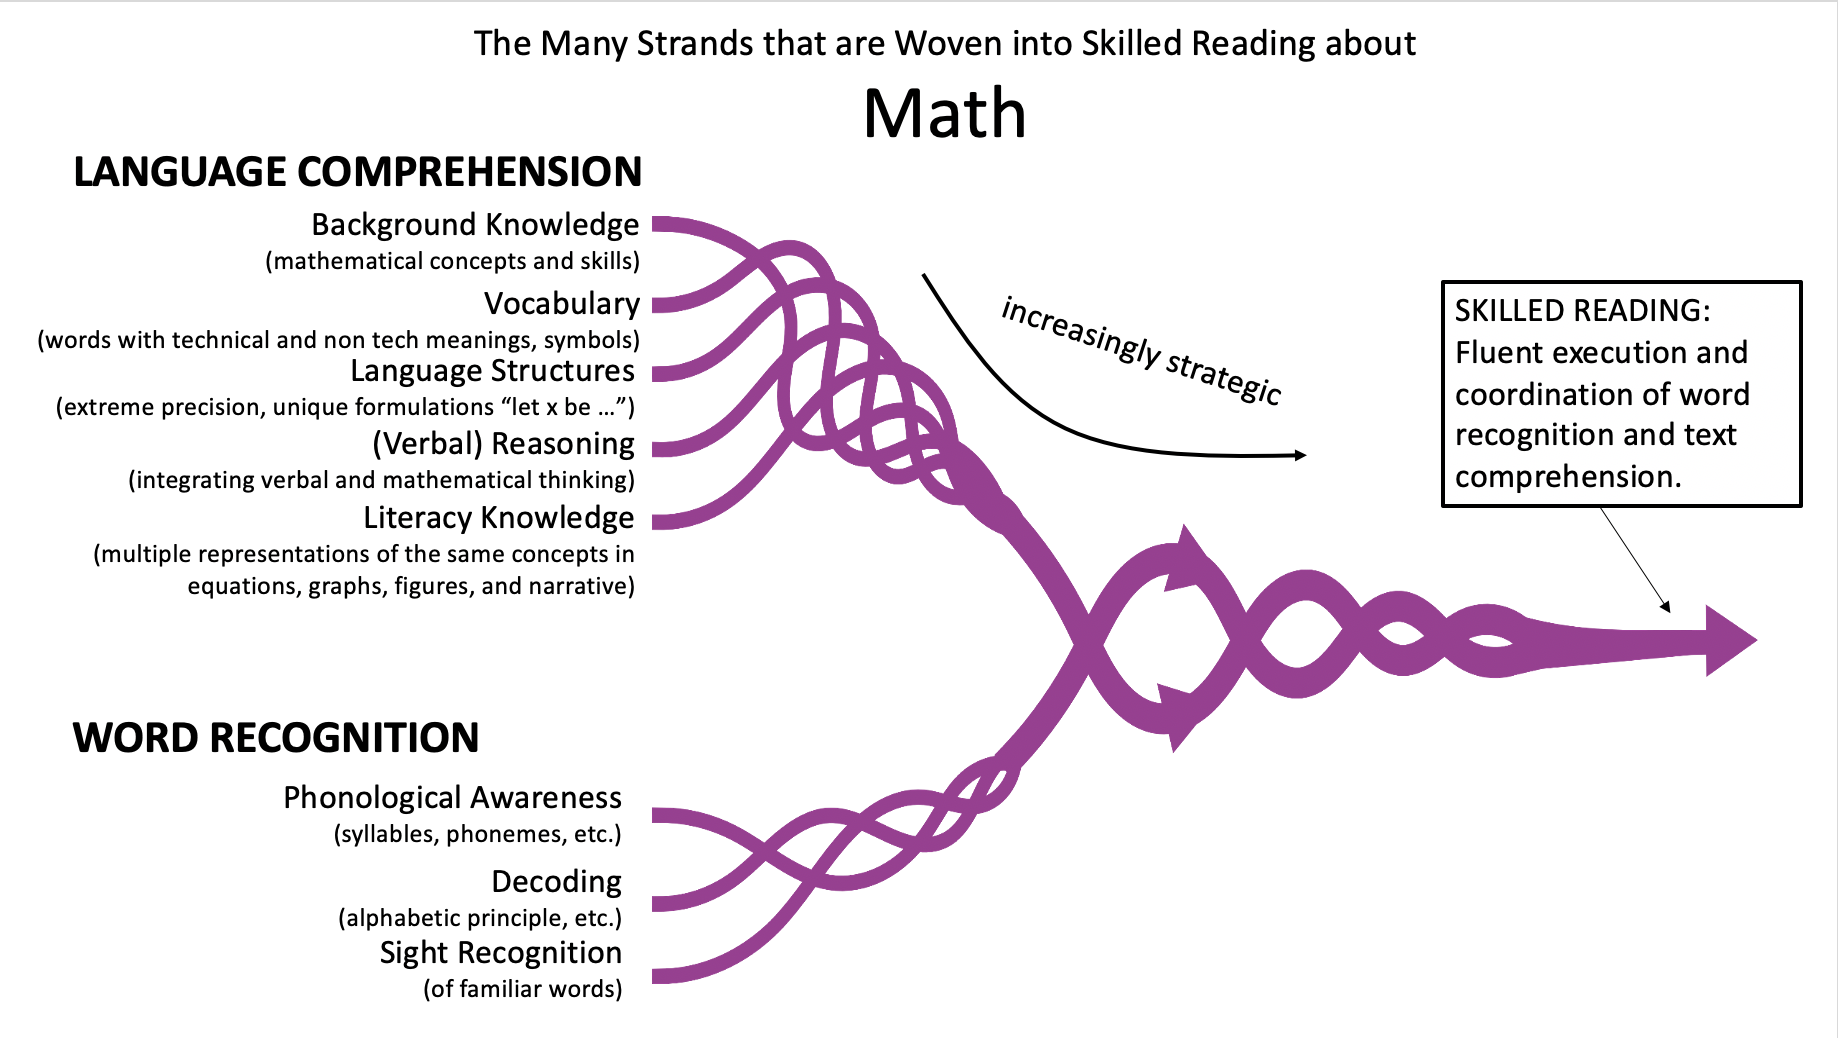 The Many Strands of Skilled Reading in Math